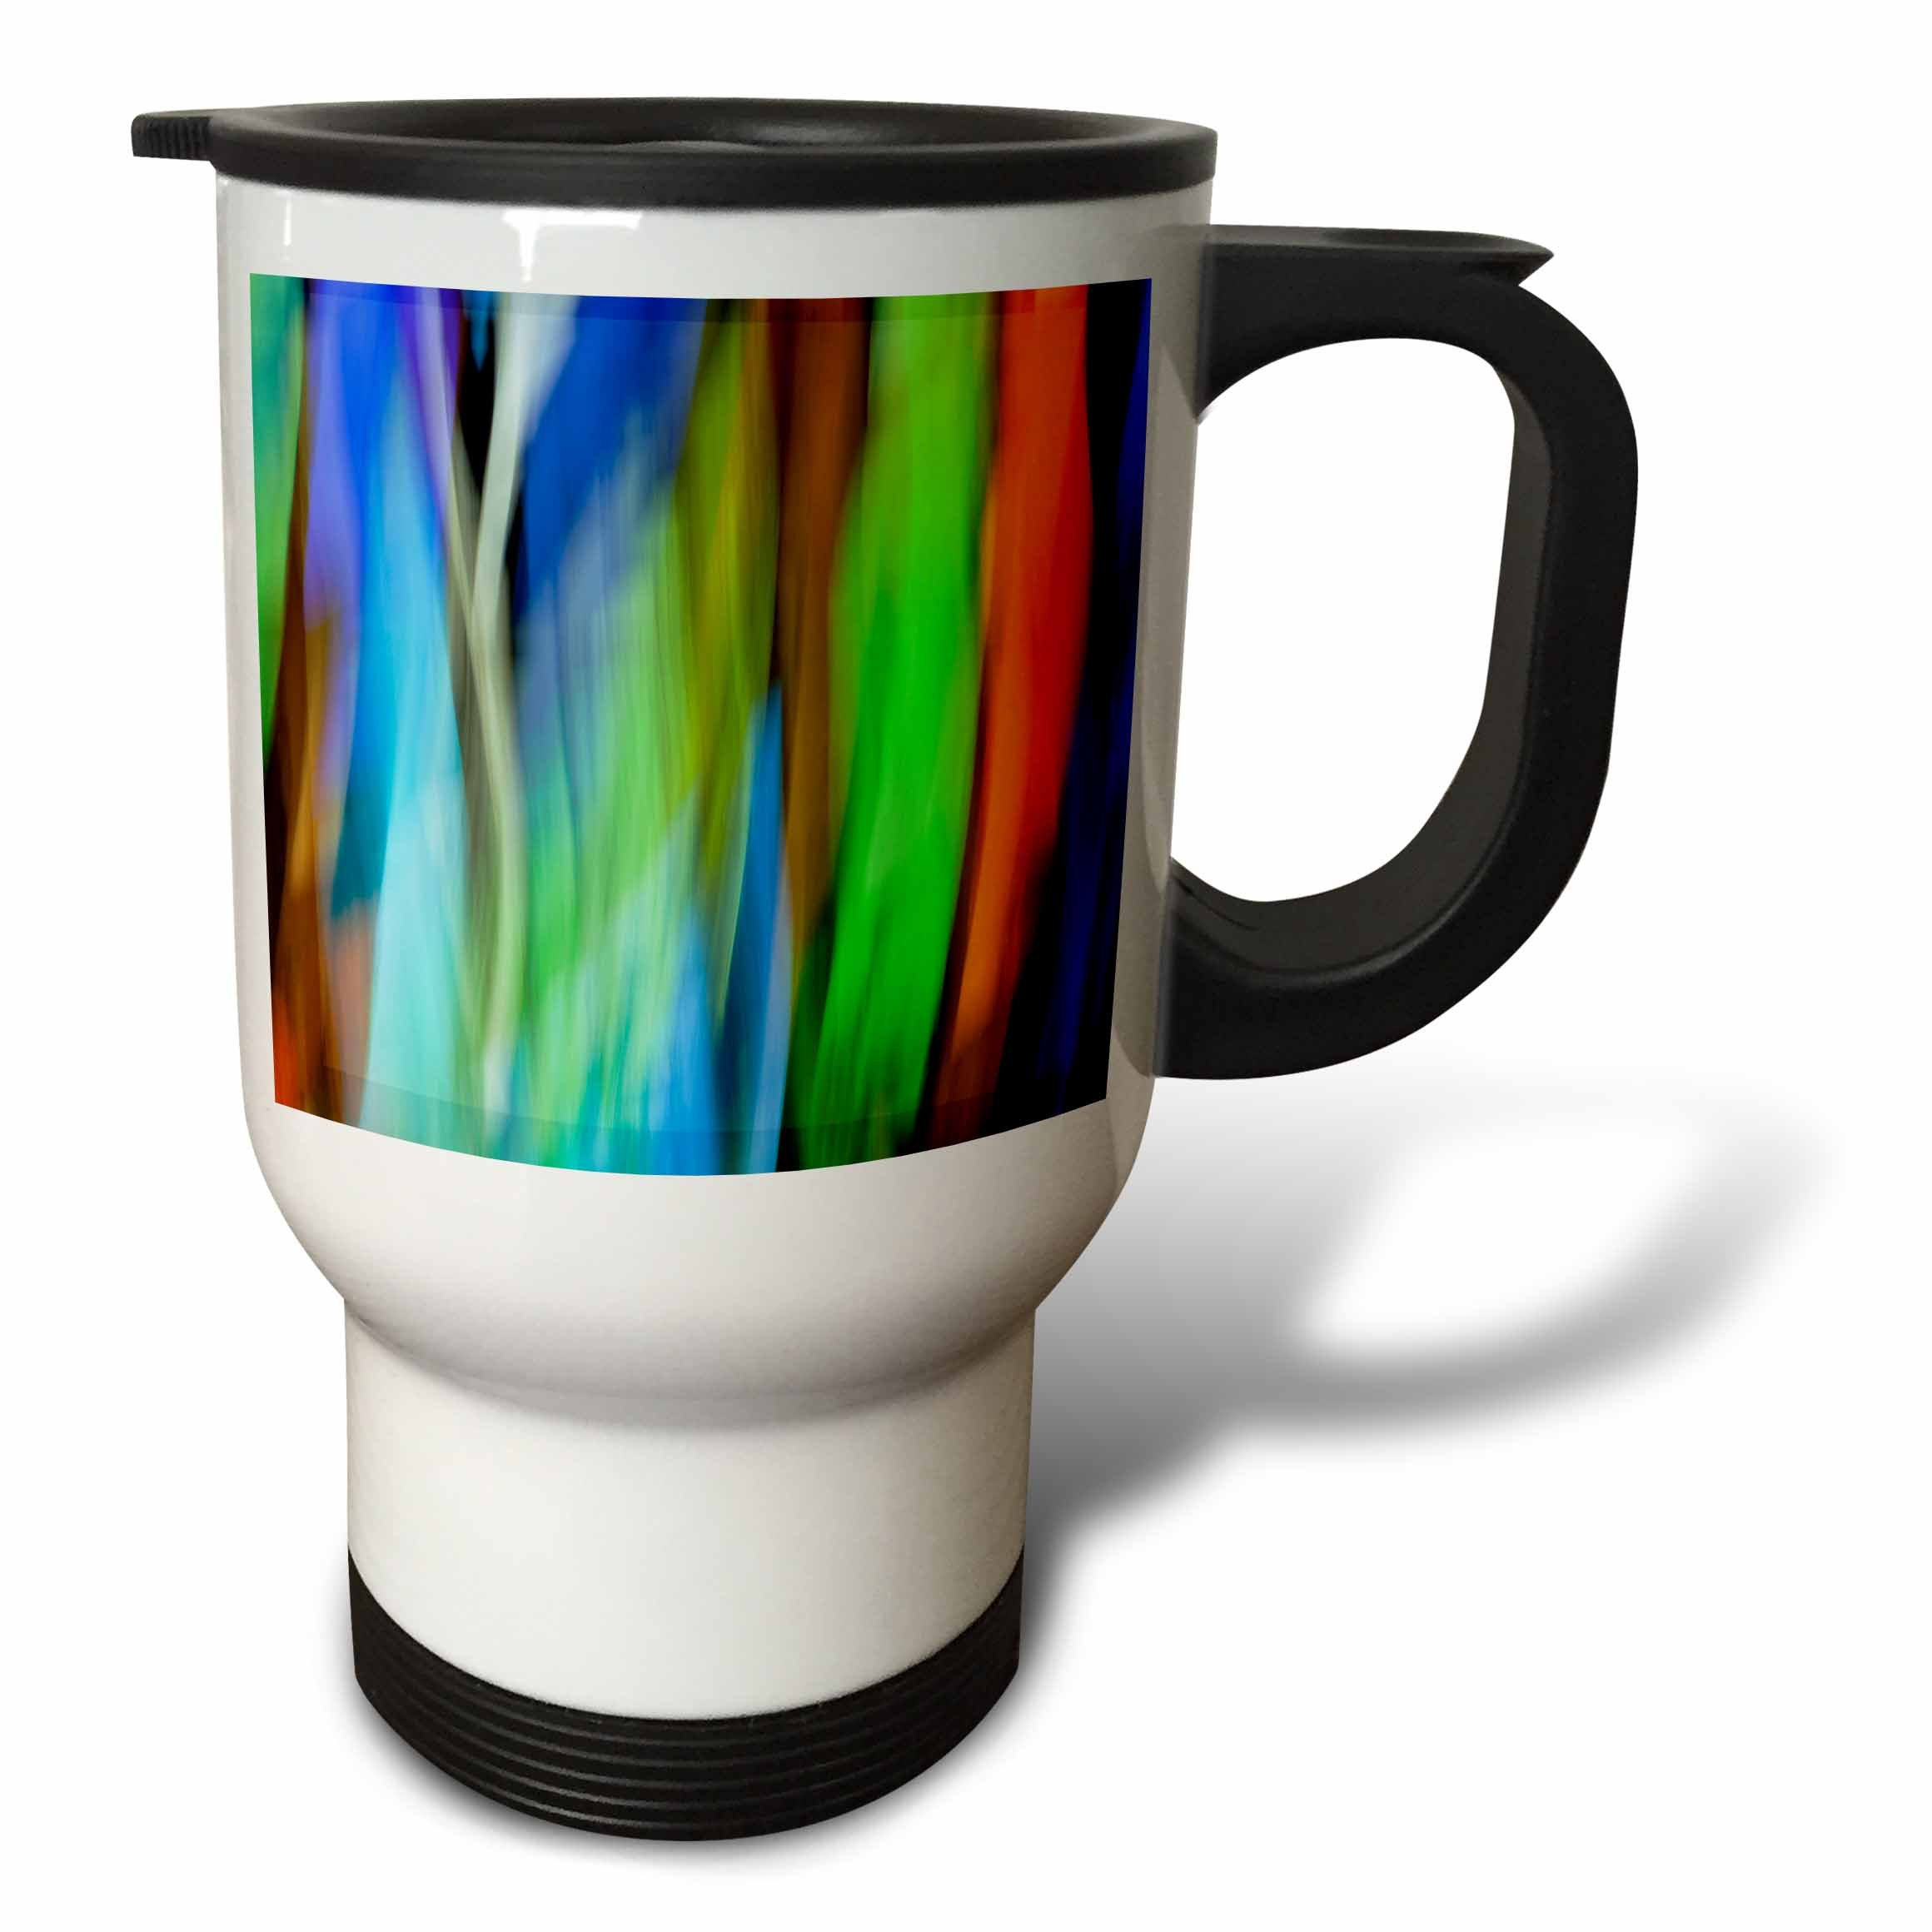 3dRose Danita Delimont - Abstracts - A motion blur of a stain glass window. - 14oz Stainless Steel Travel Mug (tm_276400_1)